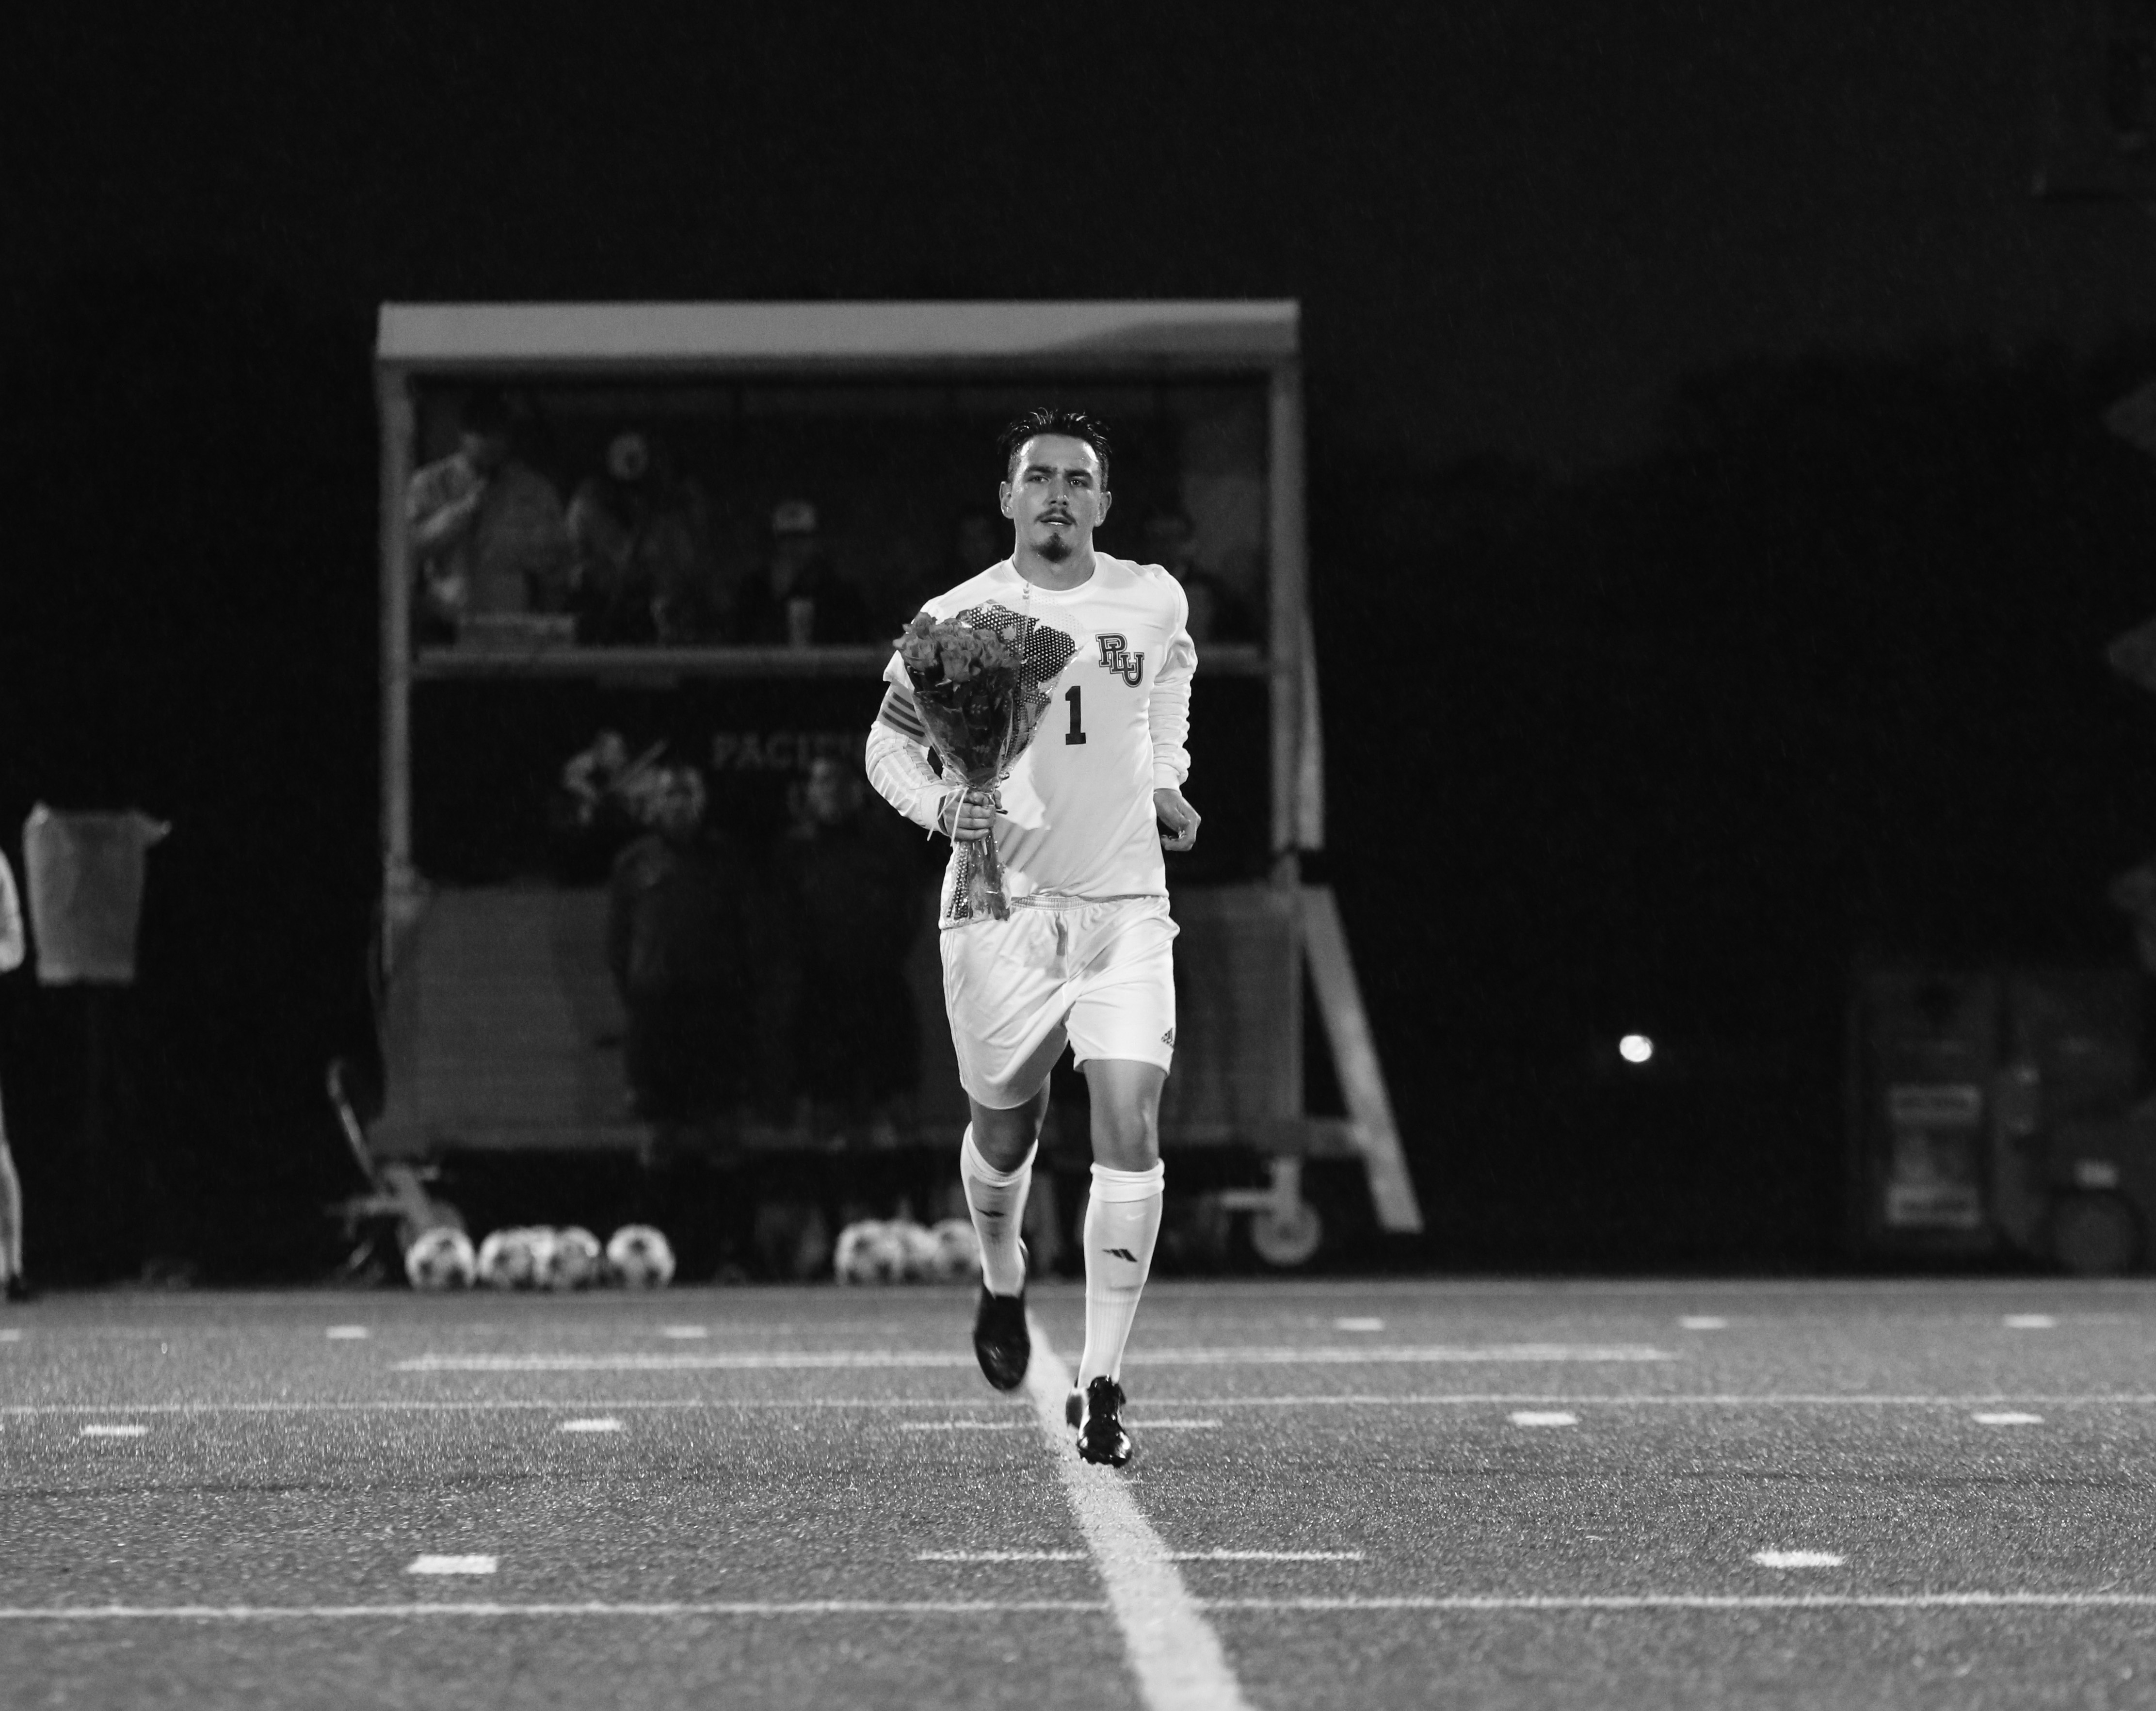 PHOTO BY BAILEY PLUMB: Senior goalie Mike Arguello being honored for Senior Night. Arguello gave up 10 goals in 14 Northwest Conference games with five shutouts.